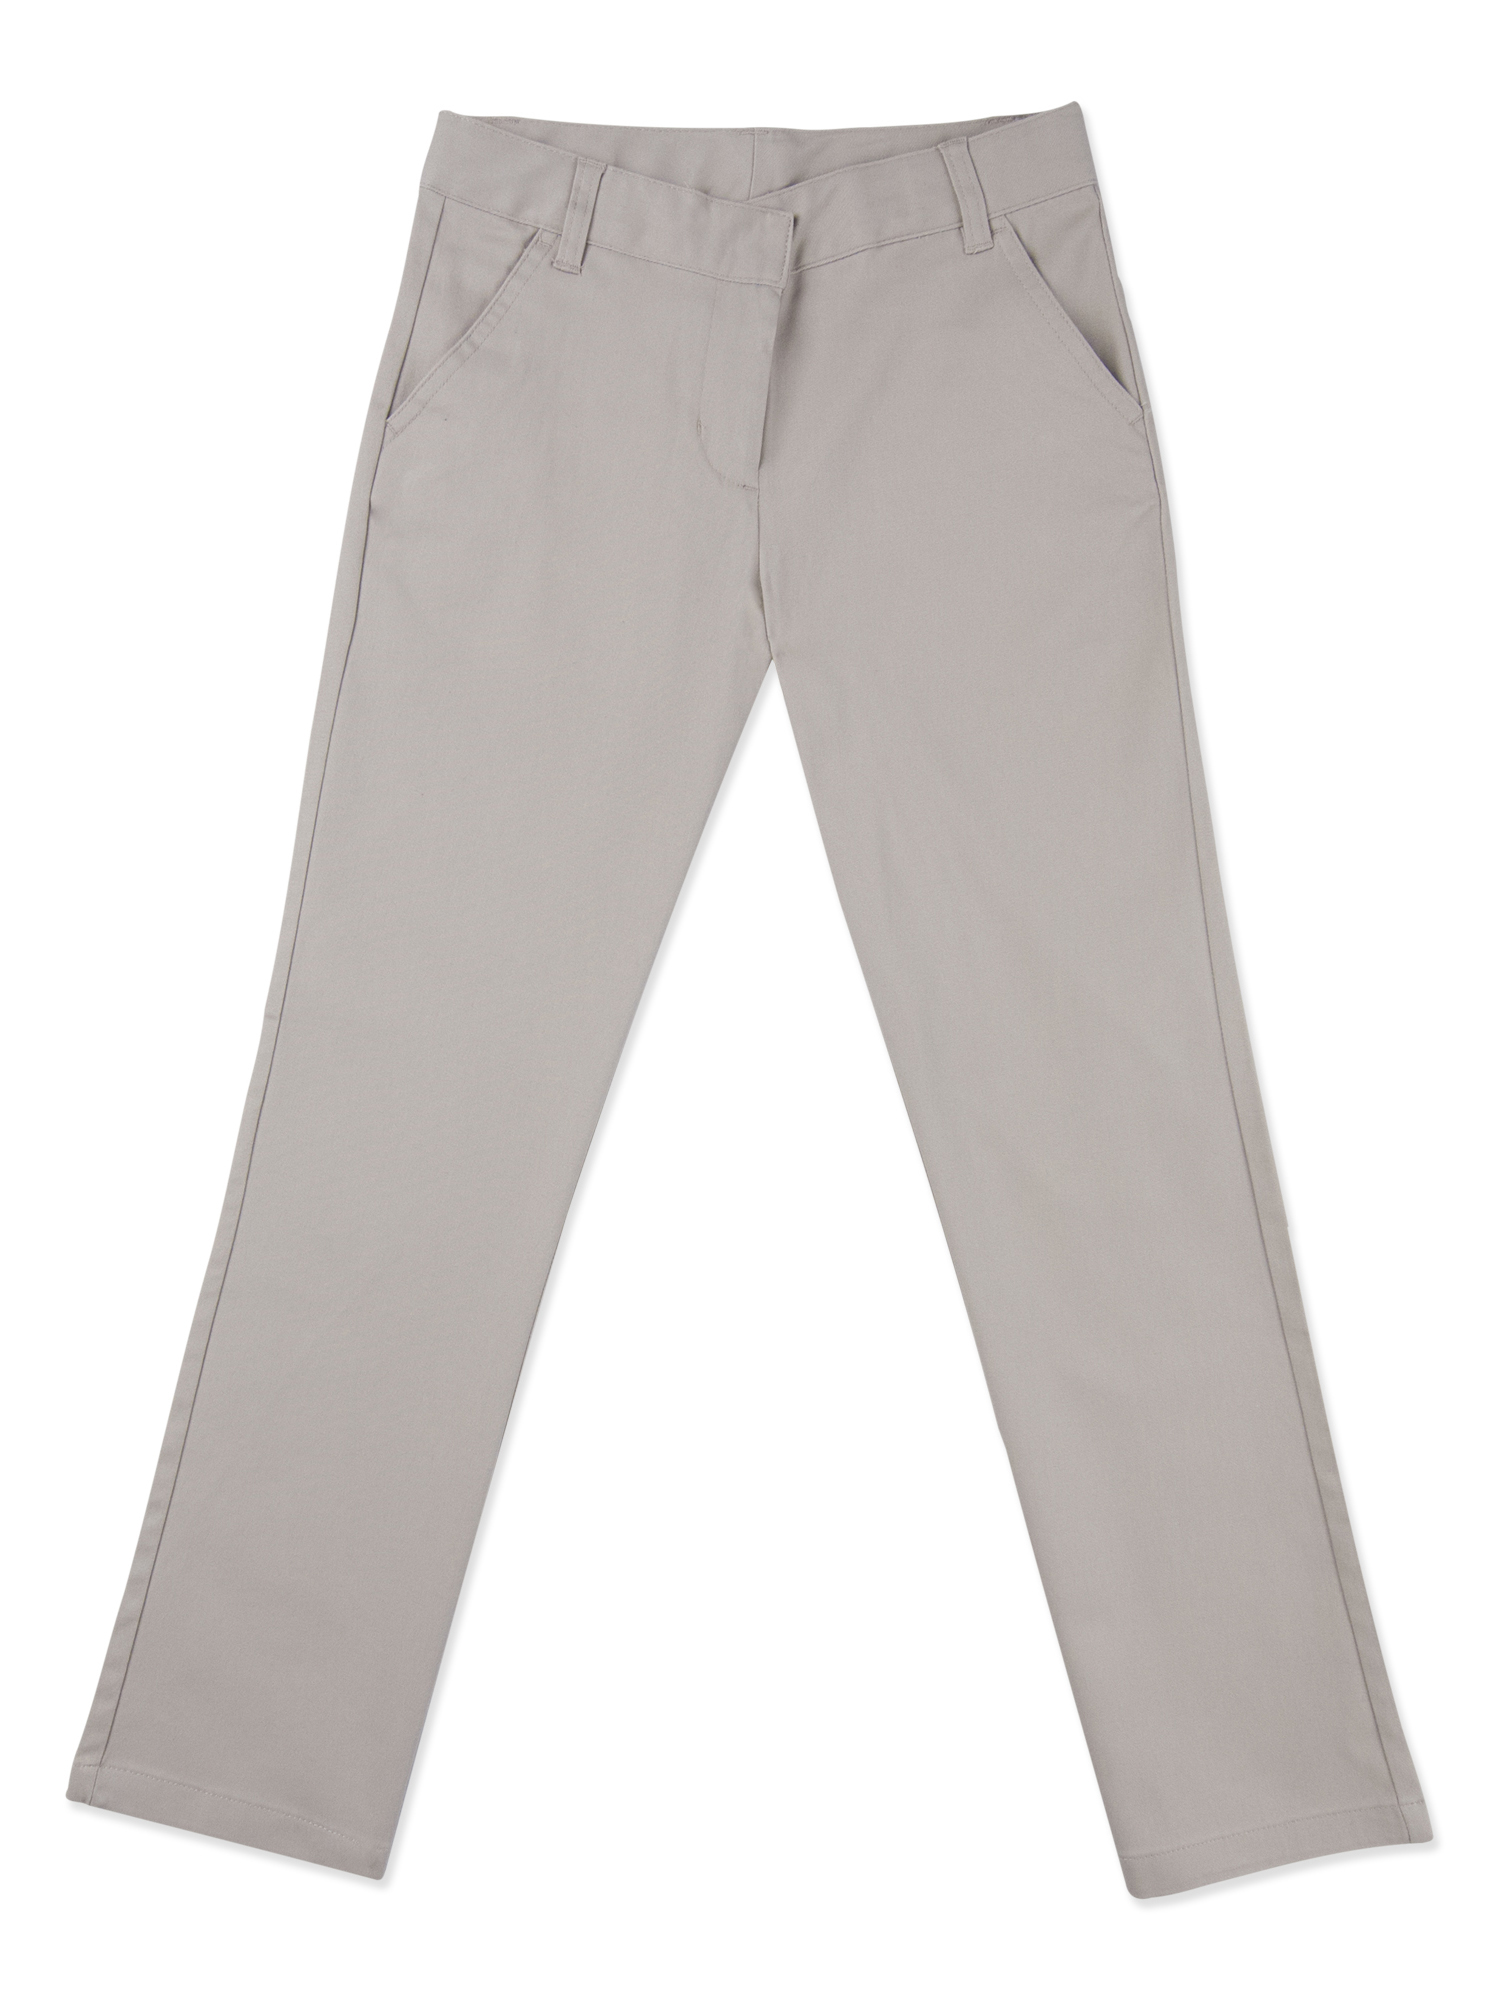 Girls' PLUS School Uniforms, Flat Front Pant